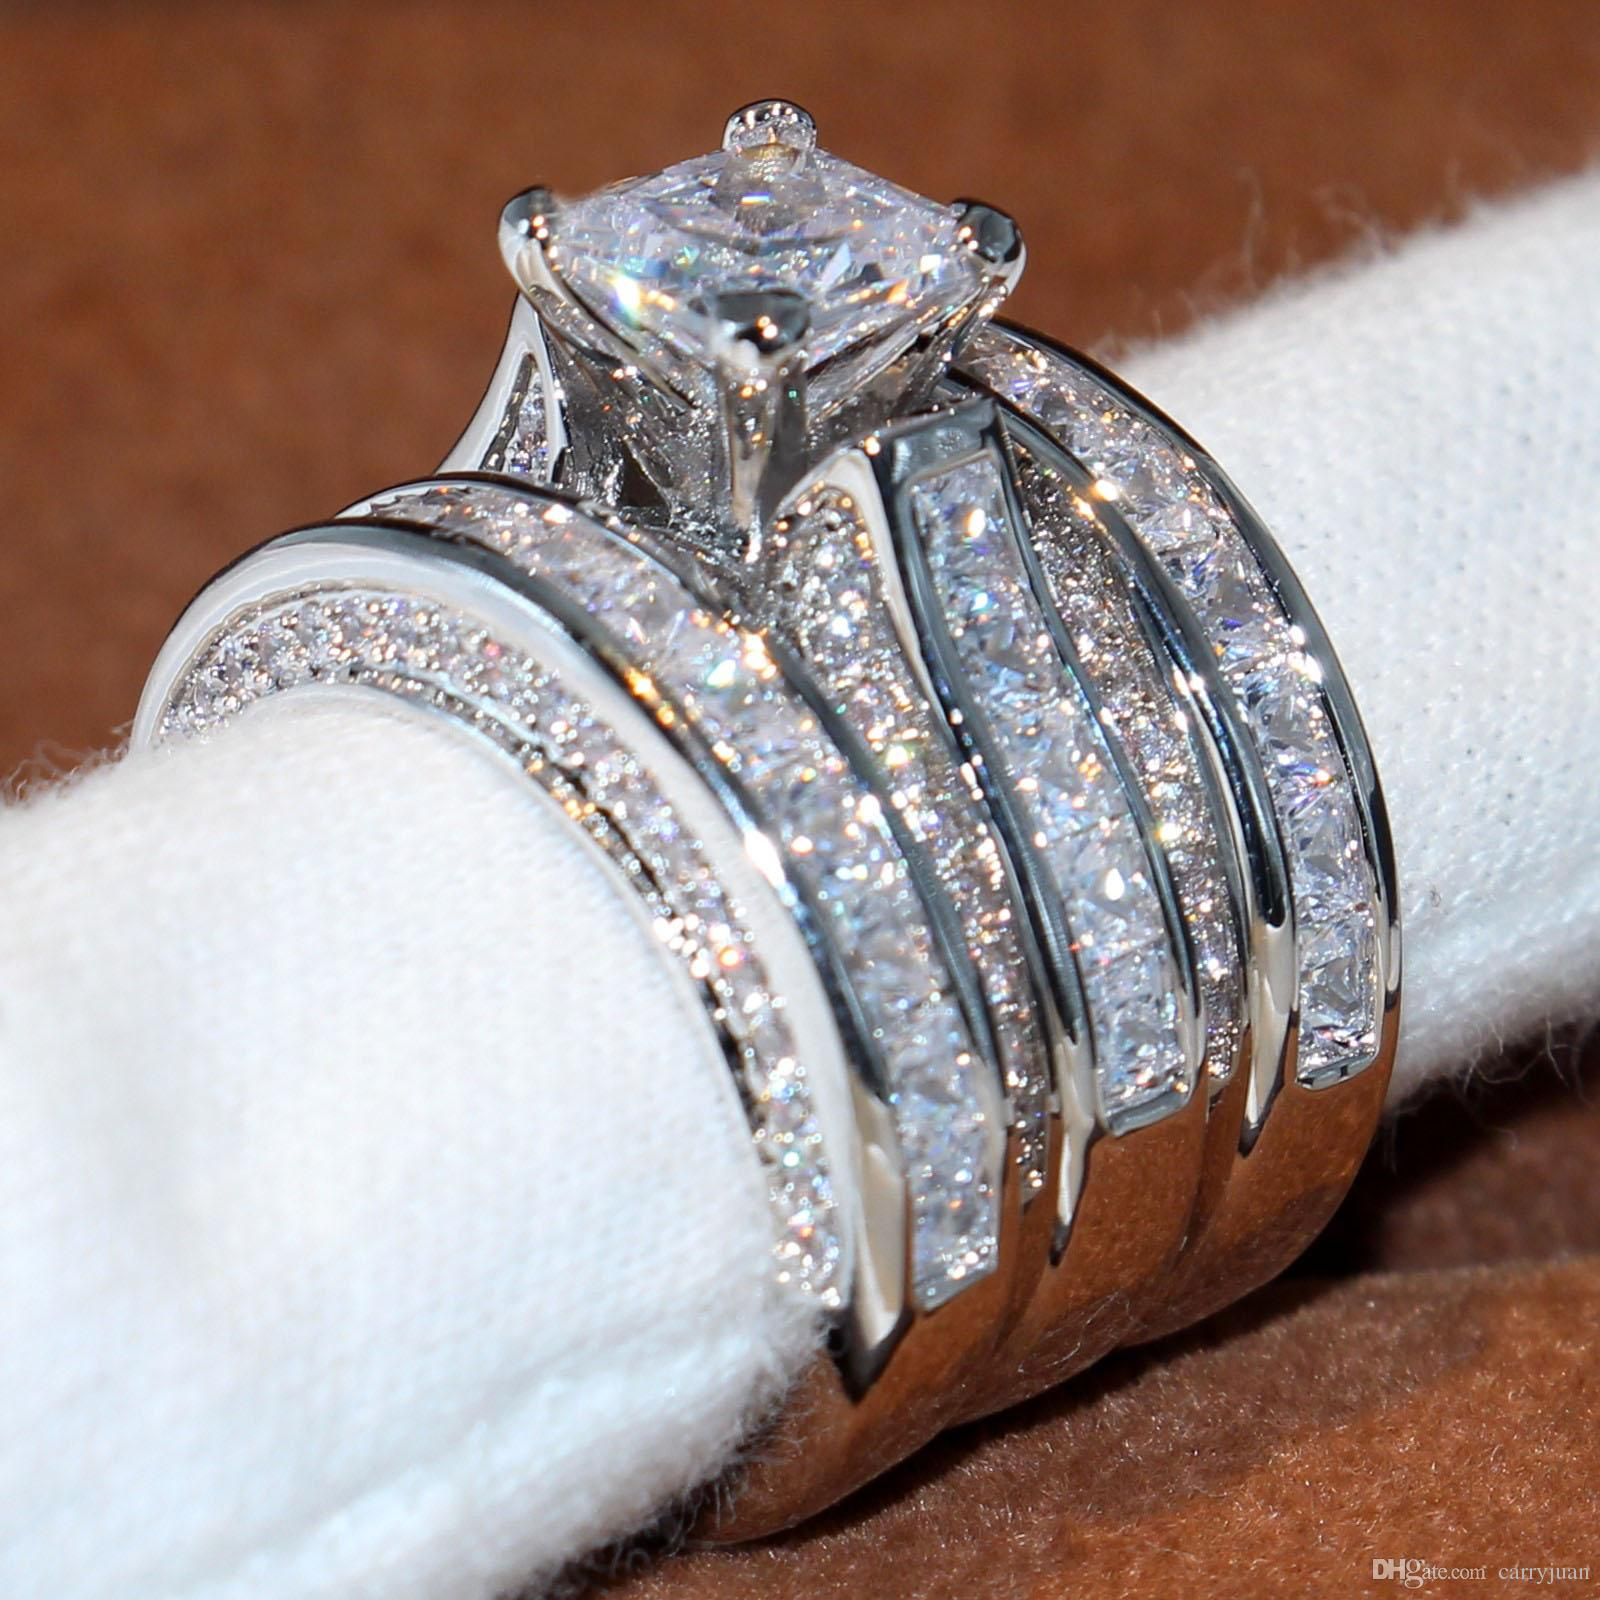 """2019 Size 5 12 Top Sparkling Luxury Jewelry 925 Sterling Silver Wedding Ring Princess Cut 3 In 1 White Topaz Cz Diamond Women Band Ring Set Gift From With Regard To Most Recent Diamond Seven Stone """"s"""" Anniversary Bands In Sterling Silver (View 7 of 25)"""